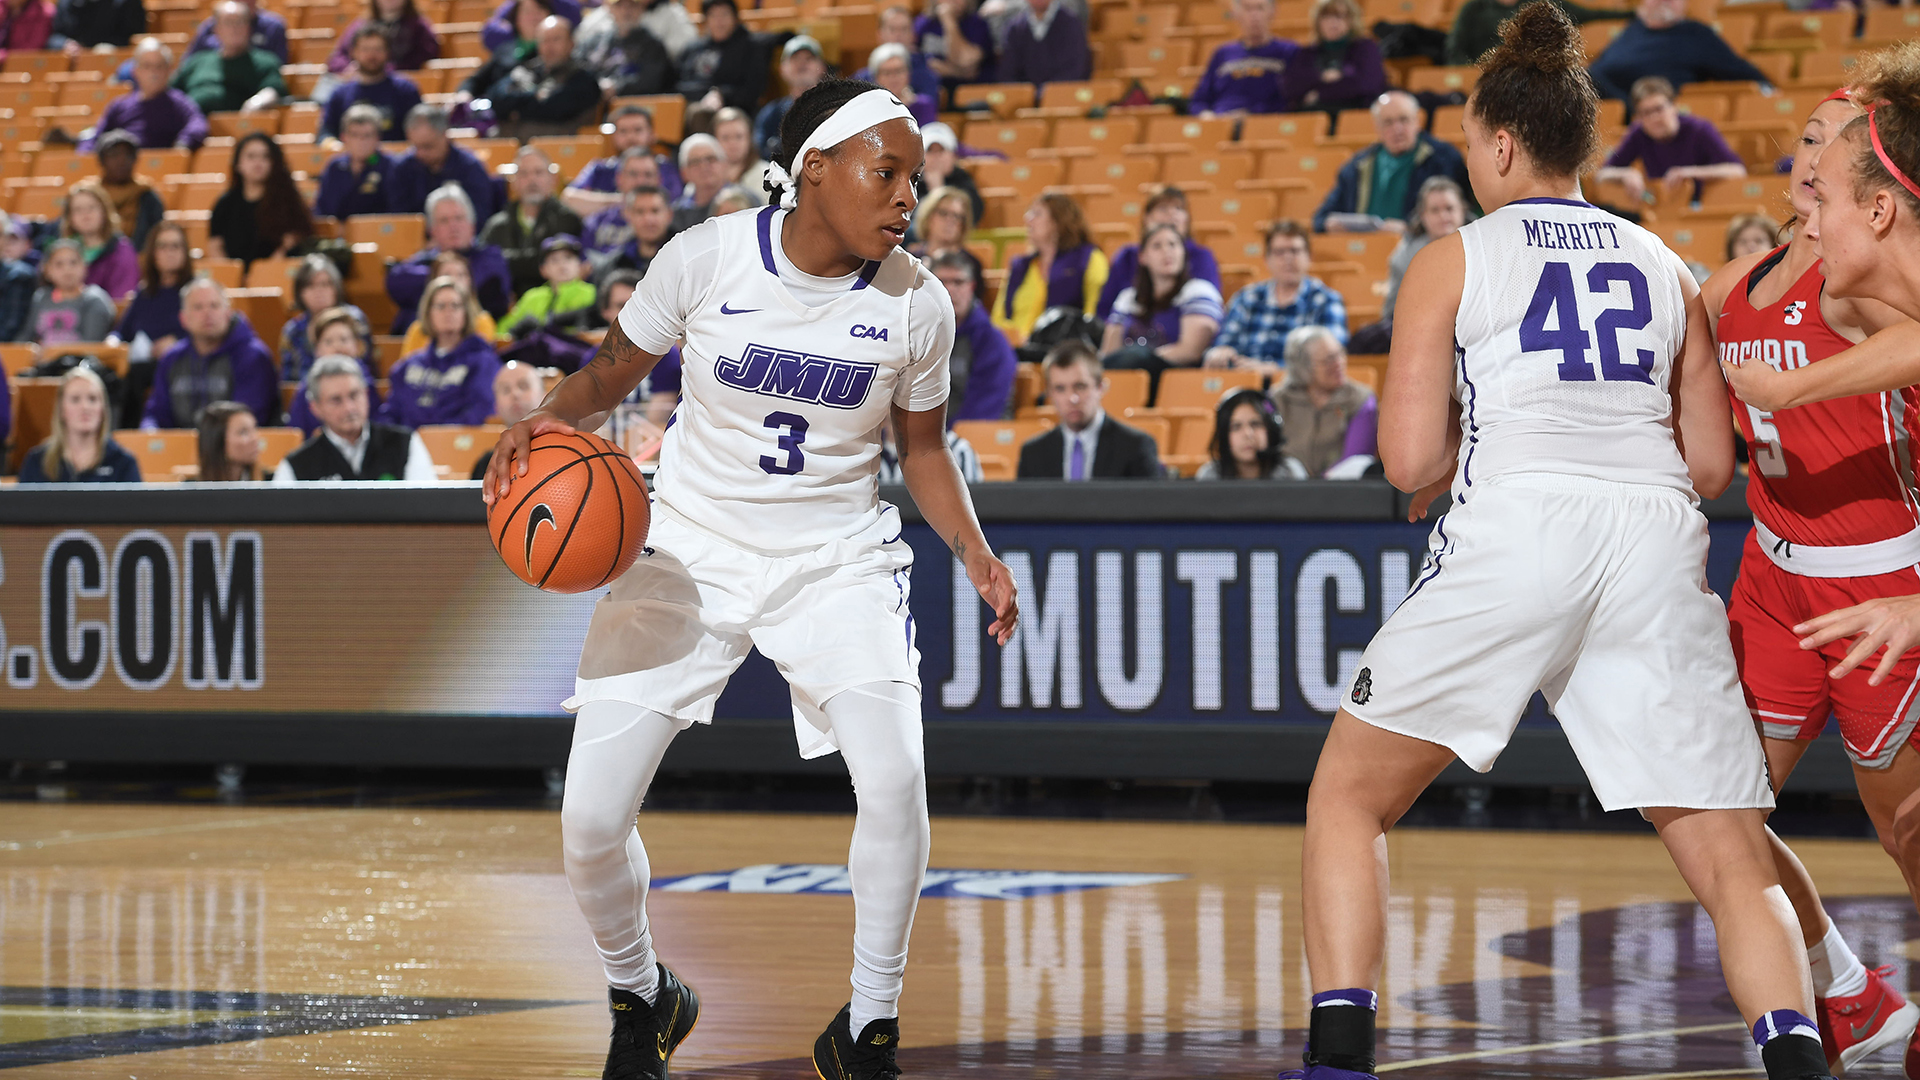 Women's Basketball: James Madison Routs Radford 62-35 in WNIT Second Round)